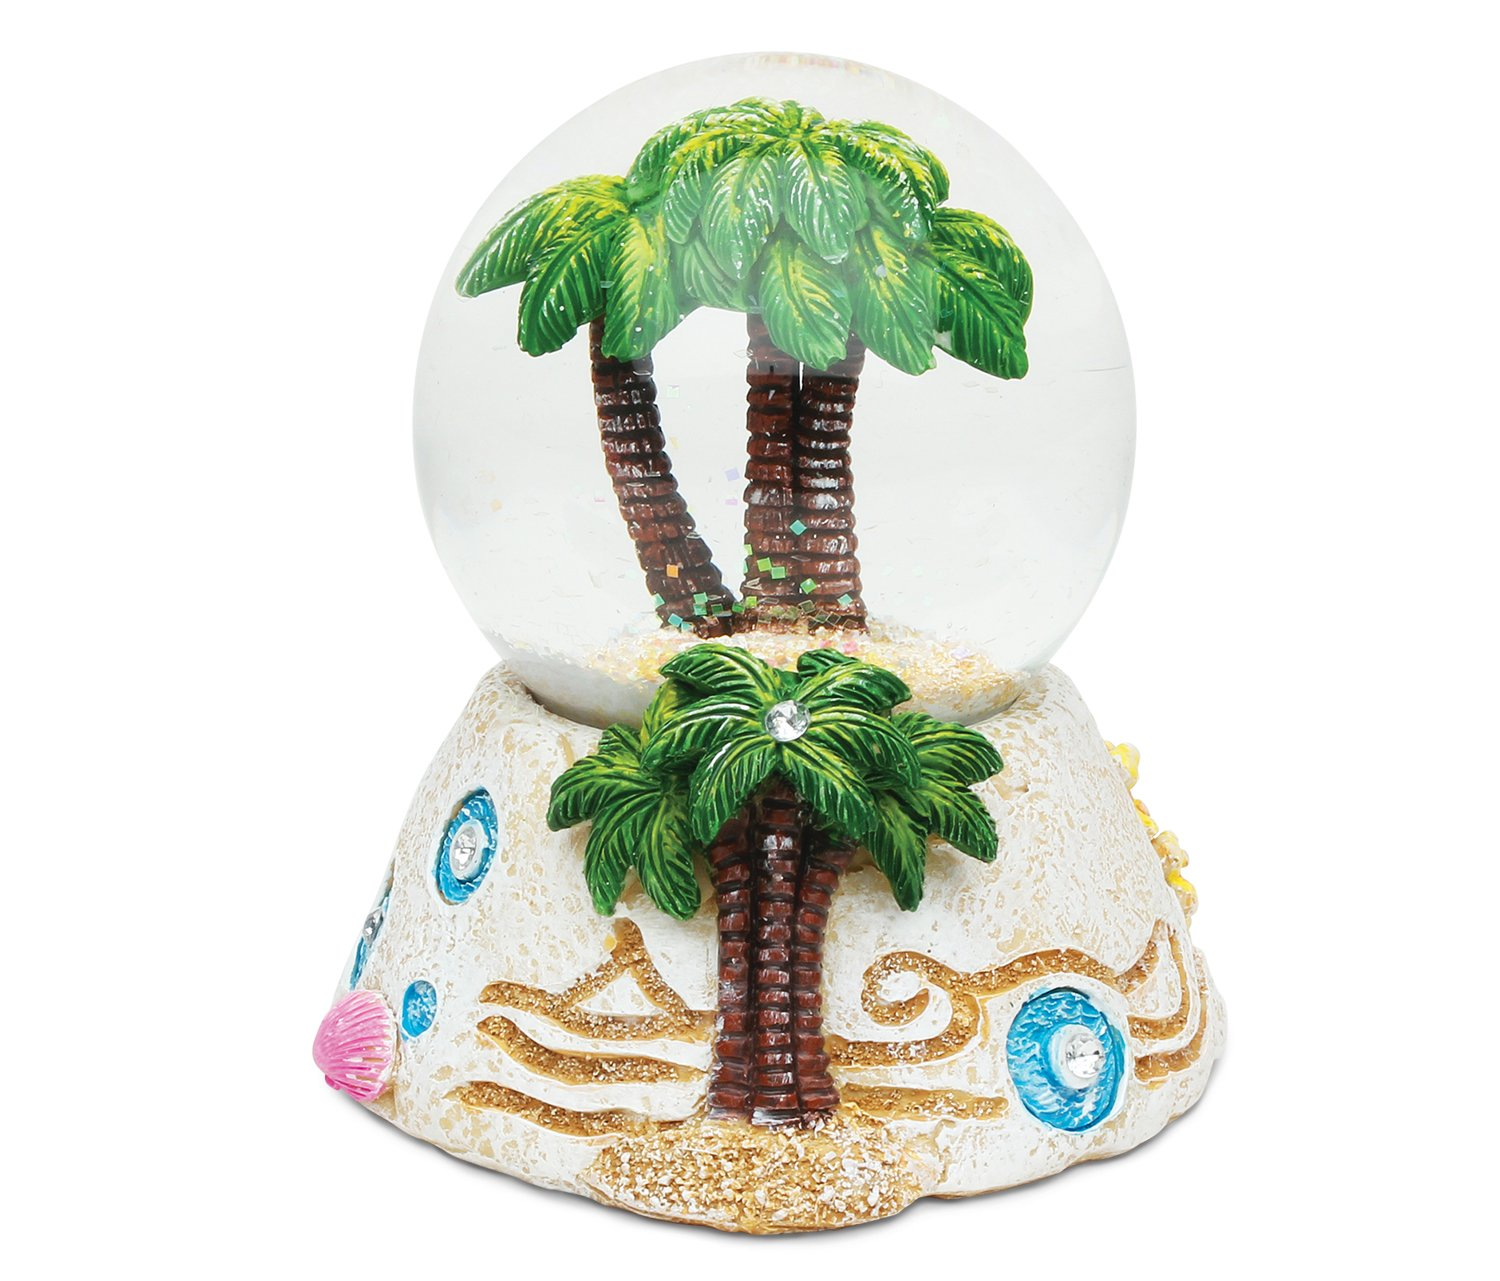 Puzzled Palm Tree Resin Stone Finish Snow Globe - Beach Collection - 65 MM - Unique Elegant Gift and Souvenir - Item #9364